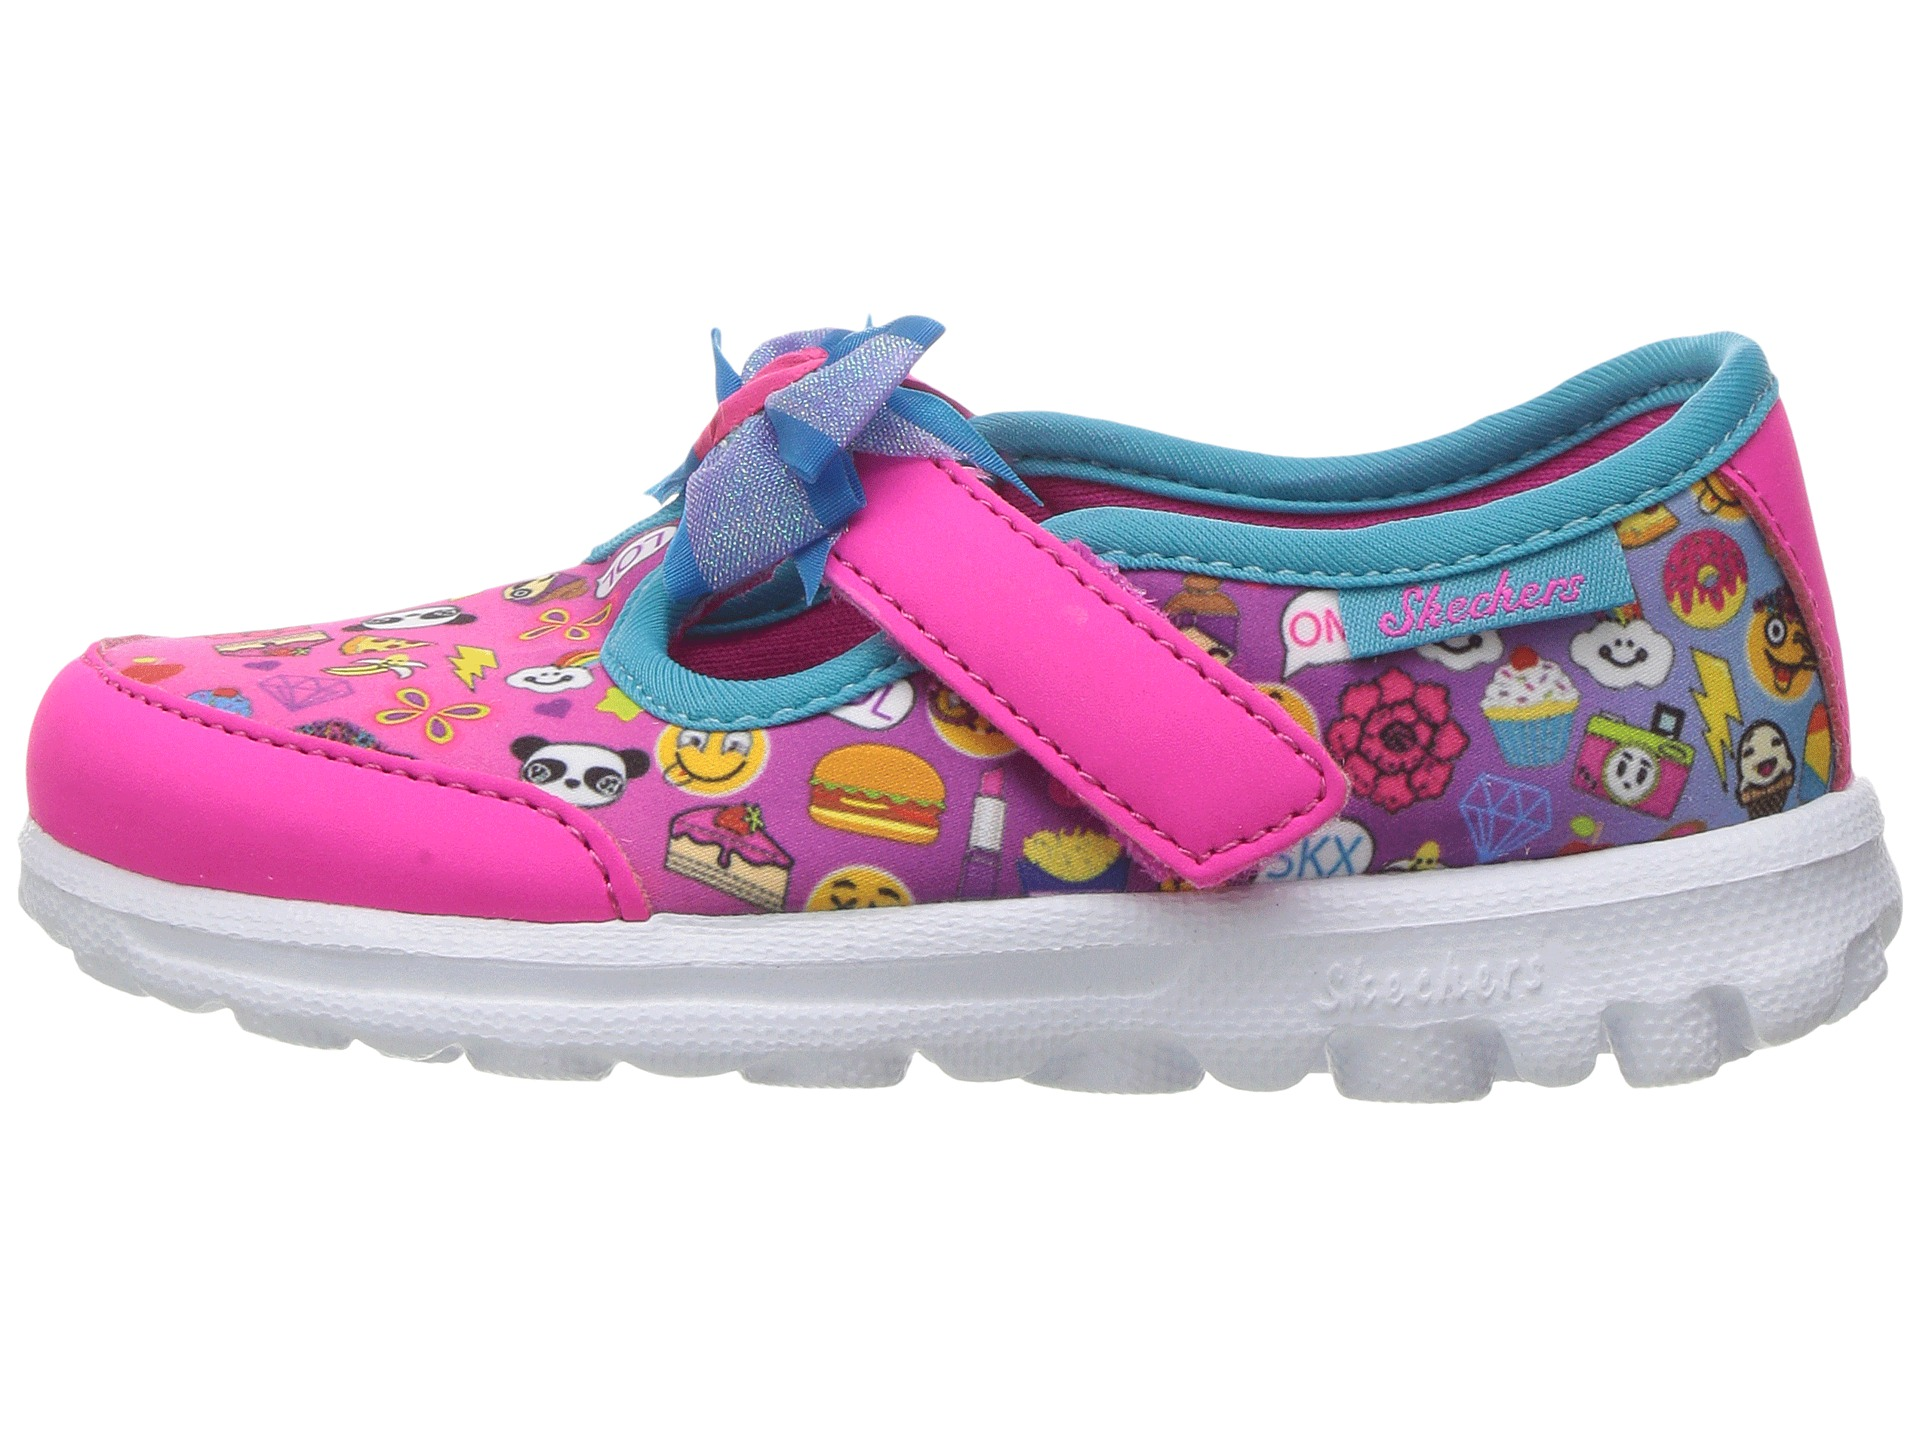 Shop Skechers Kids' Clothing Sales at Macy's are a great opportunity to save. View the Skechers Kids' Clothing Sale at Macy's & find the latest styles for your little one today. Free Shipping Available.